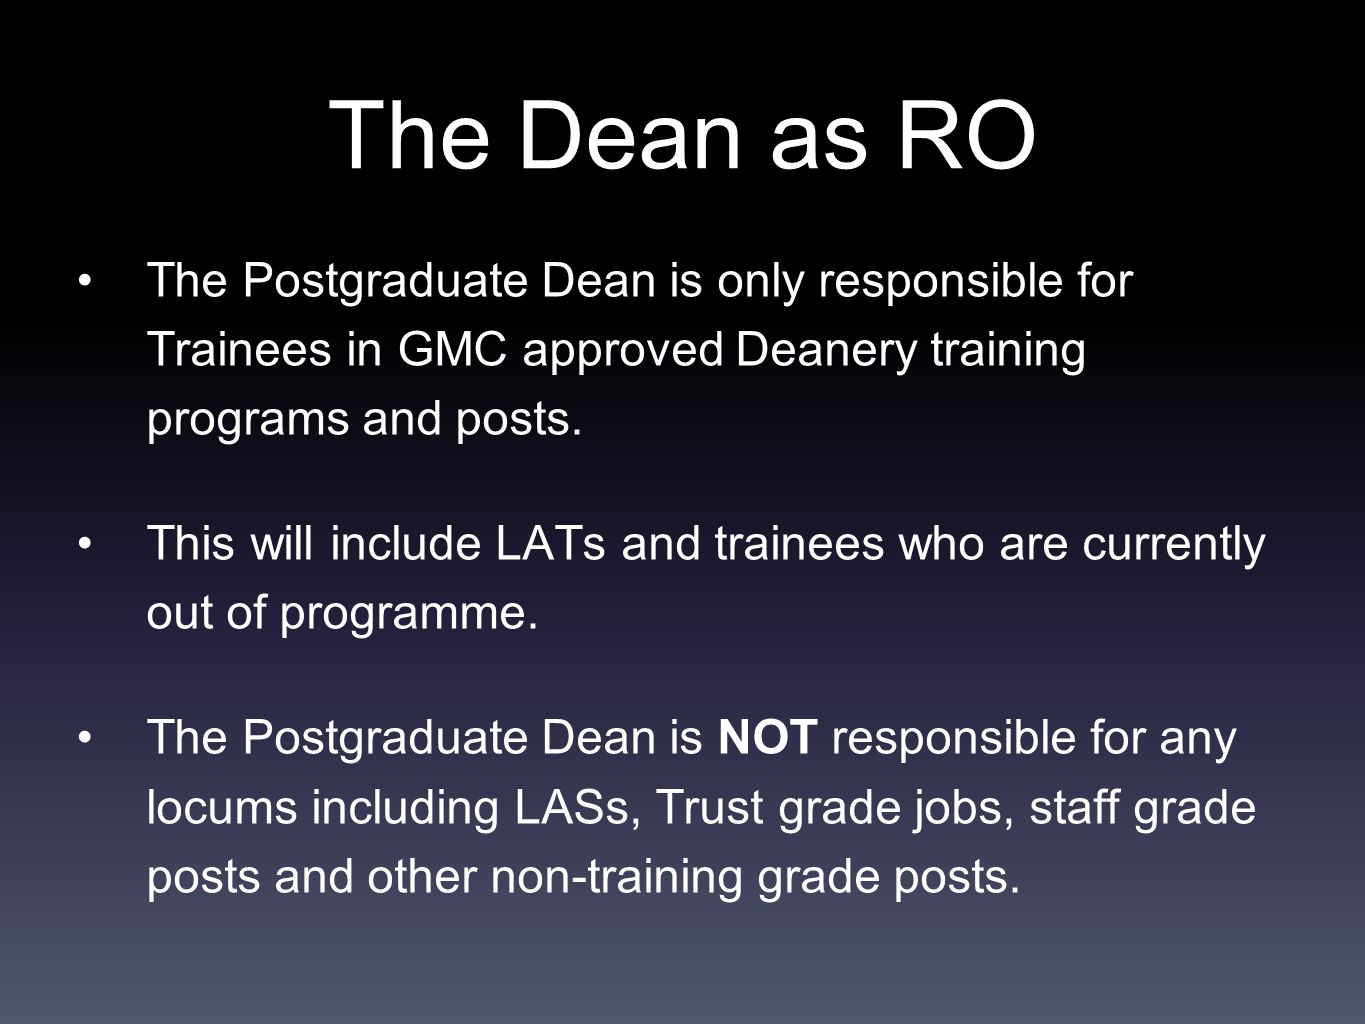 The Dean as RO The Postgraduate Dean is only responsible for Trainees in GMC approved Deanery training programs and posts.